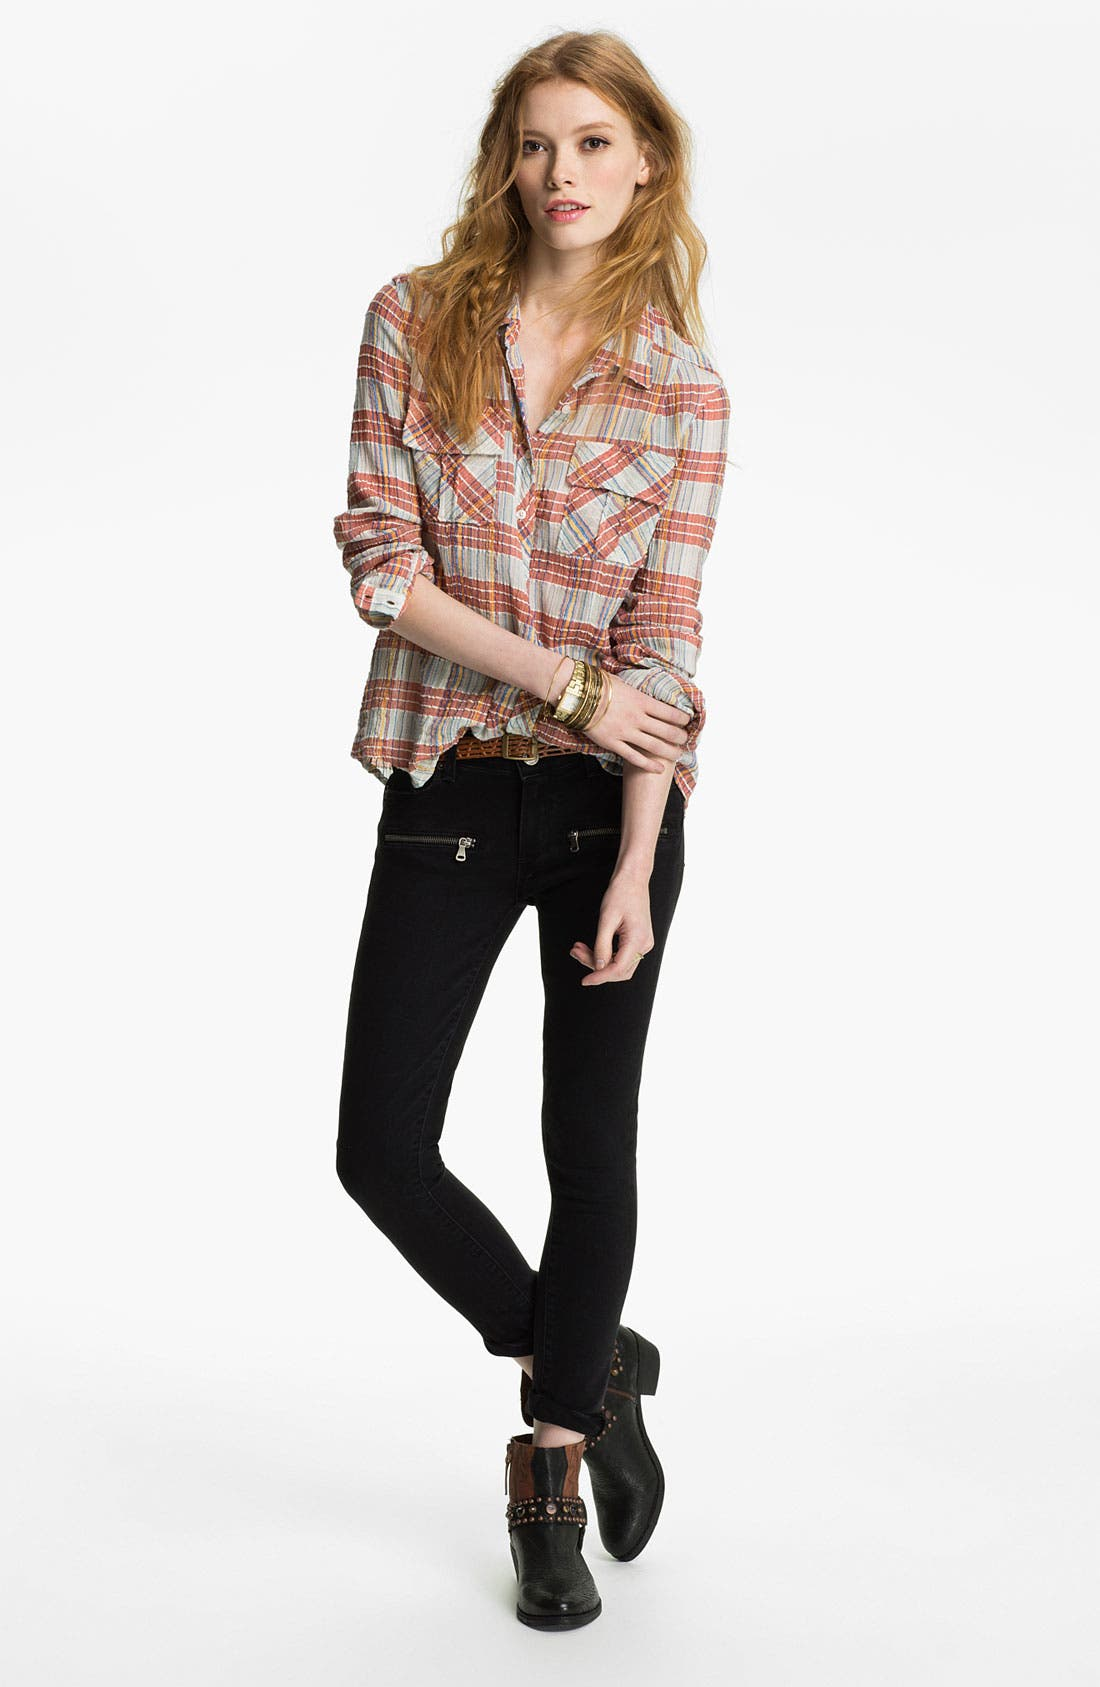 Alternate Image 1 Selected - Free People Shirt & Paige Jeans